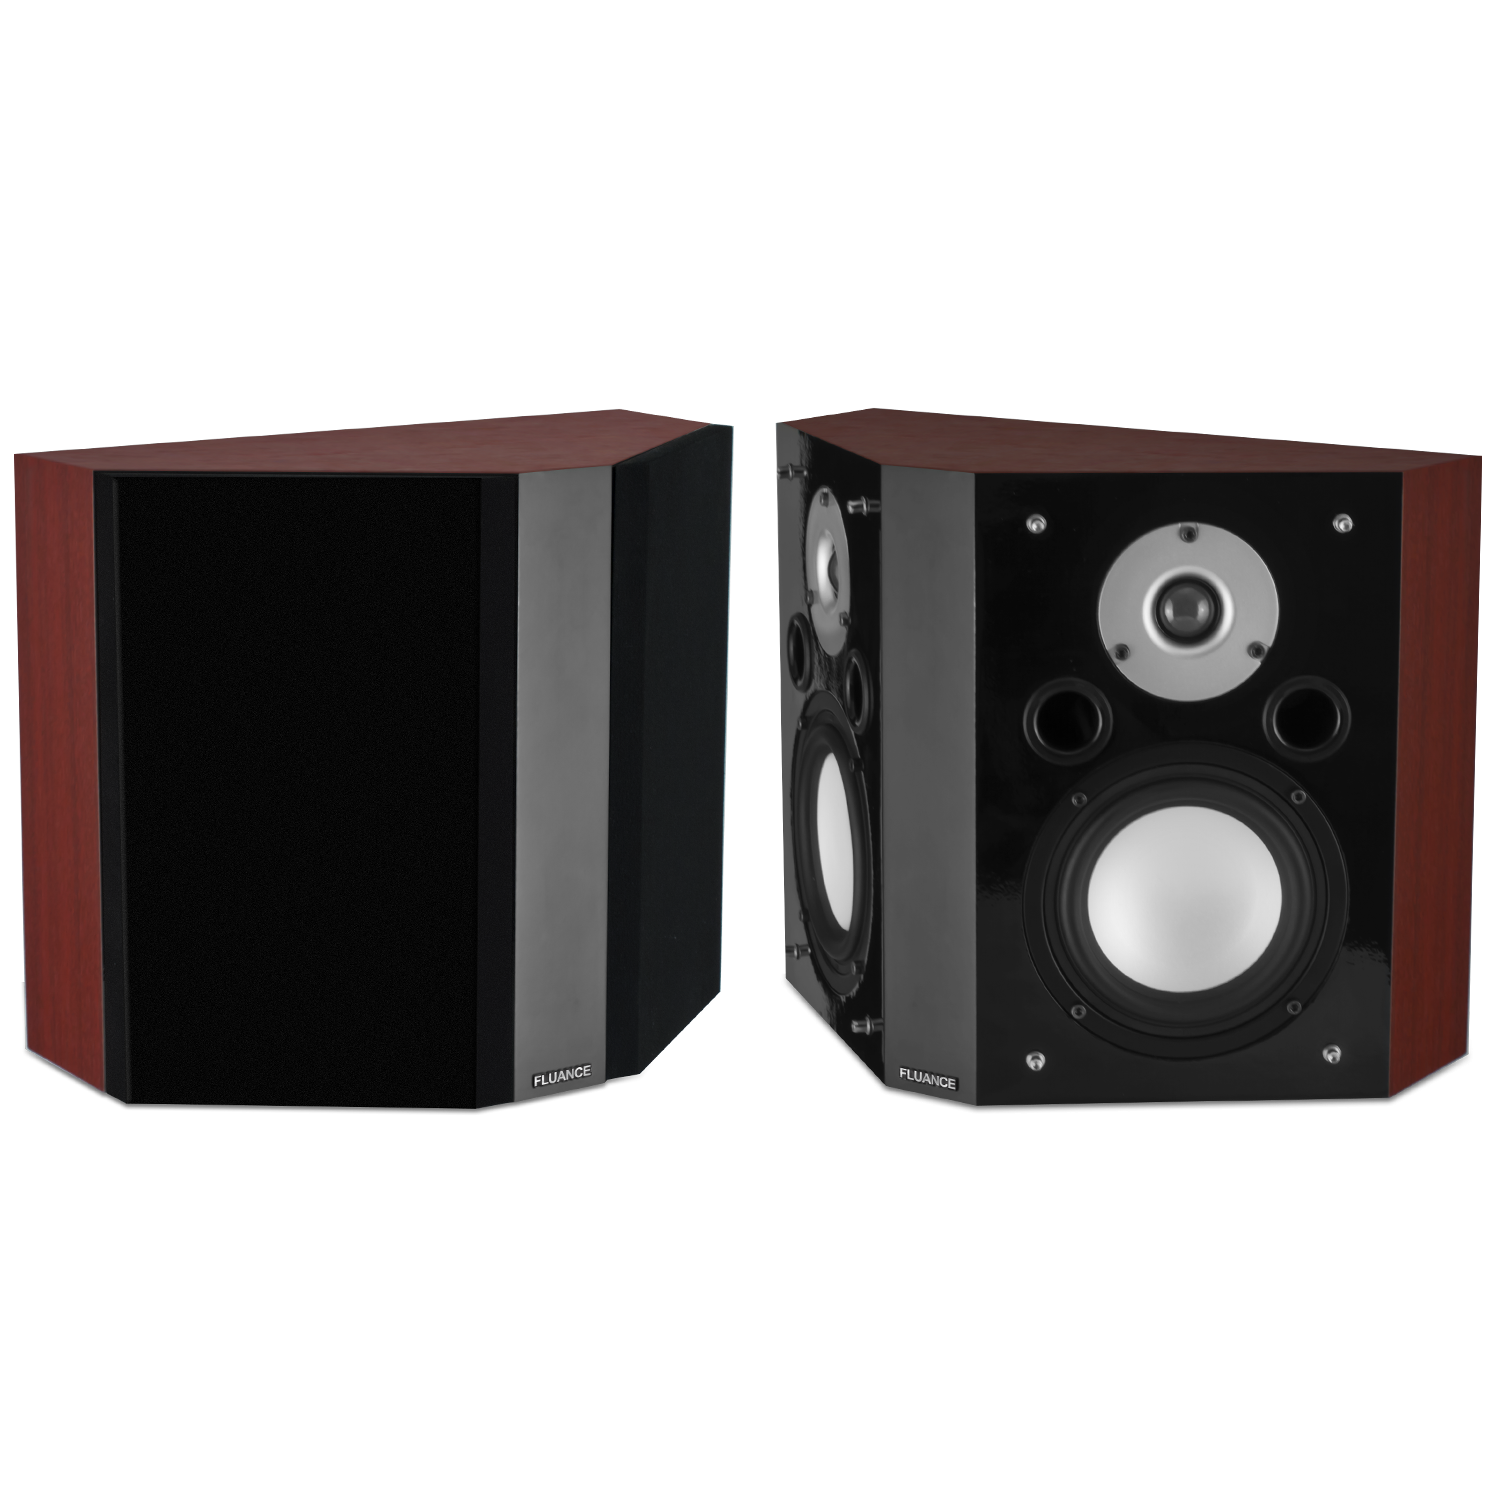 Fluance XLBP Bipolar Wide Dispersion Surround Sound Speakers - Main